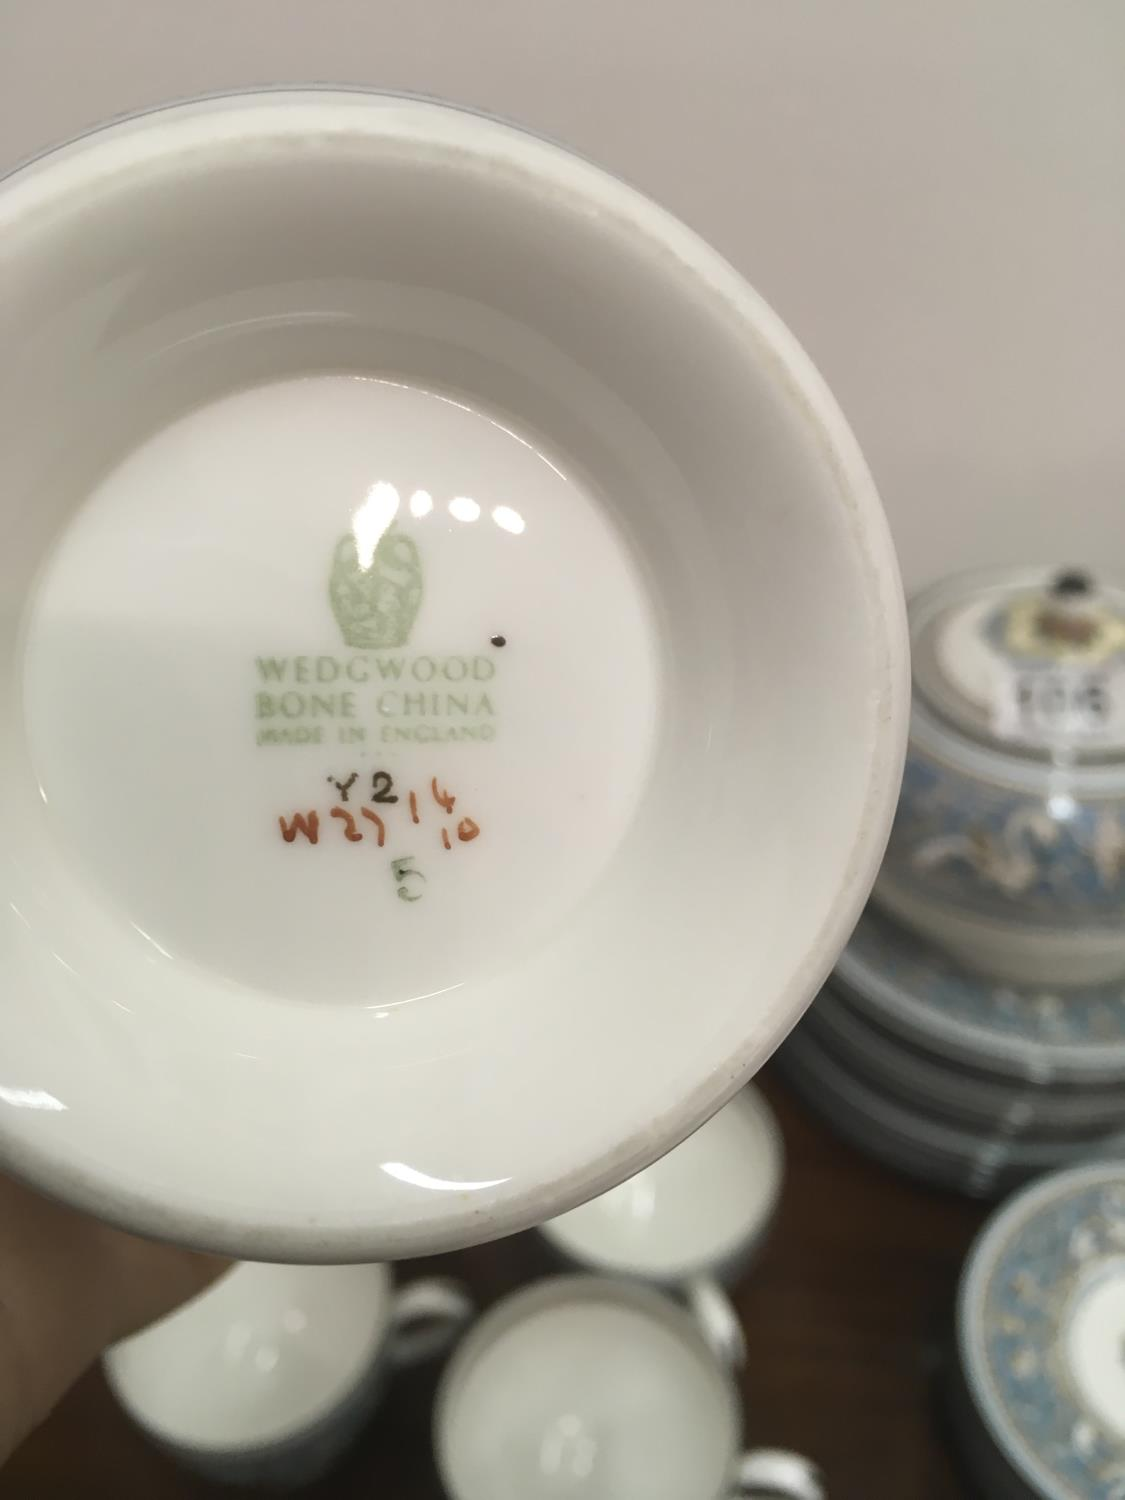 Wedgwood Classical Tea and Coffee set 8 place setting includes, coffee pot, tea pot, cream and - Image 5 of 7